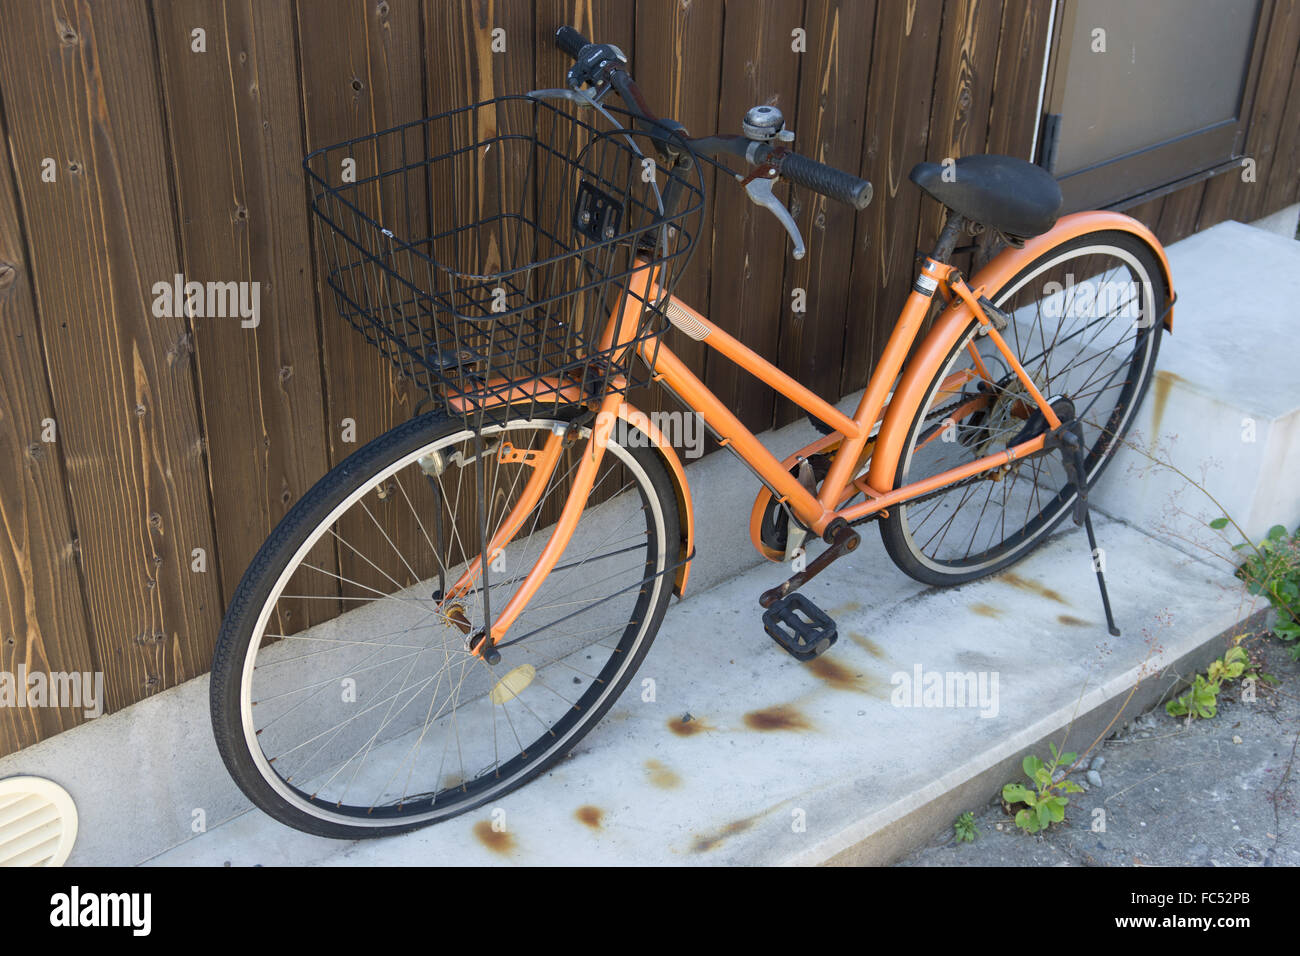 abandoned bicycle in Japan - Stock Image